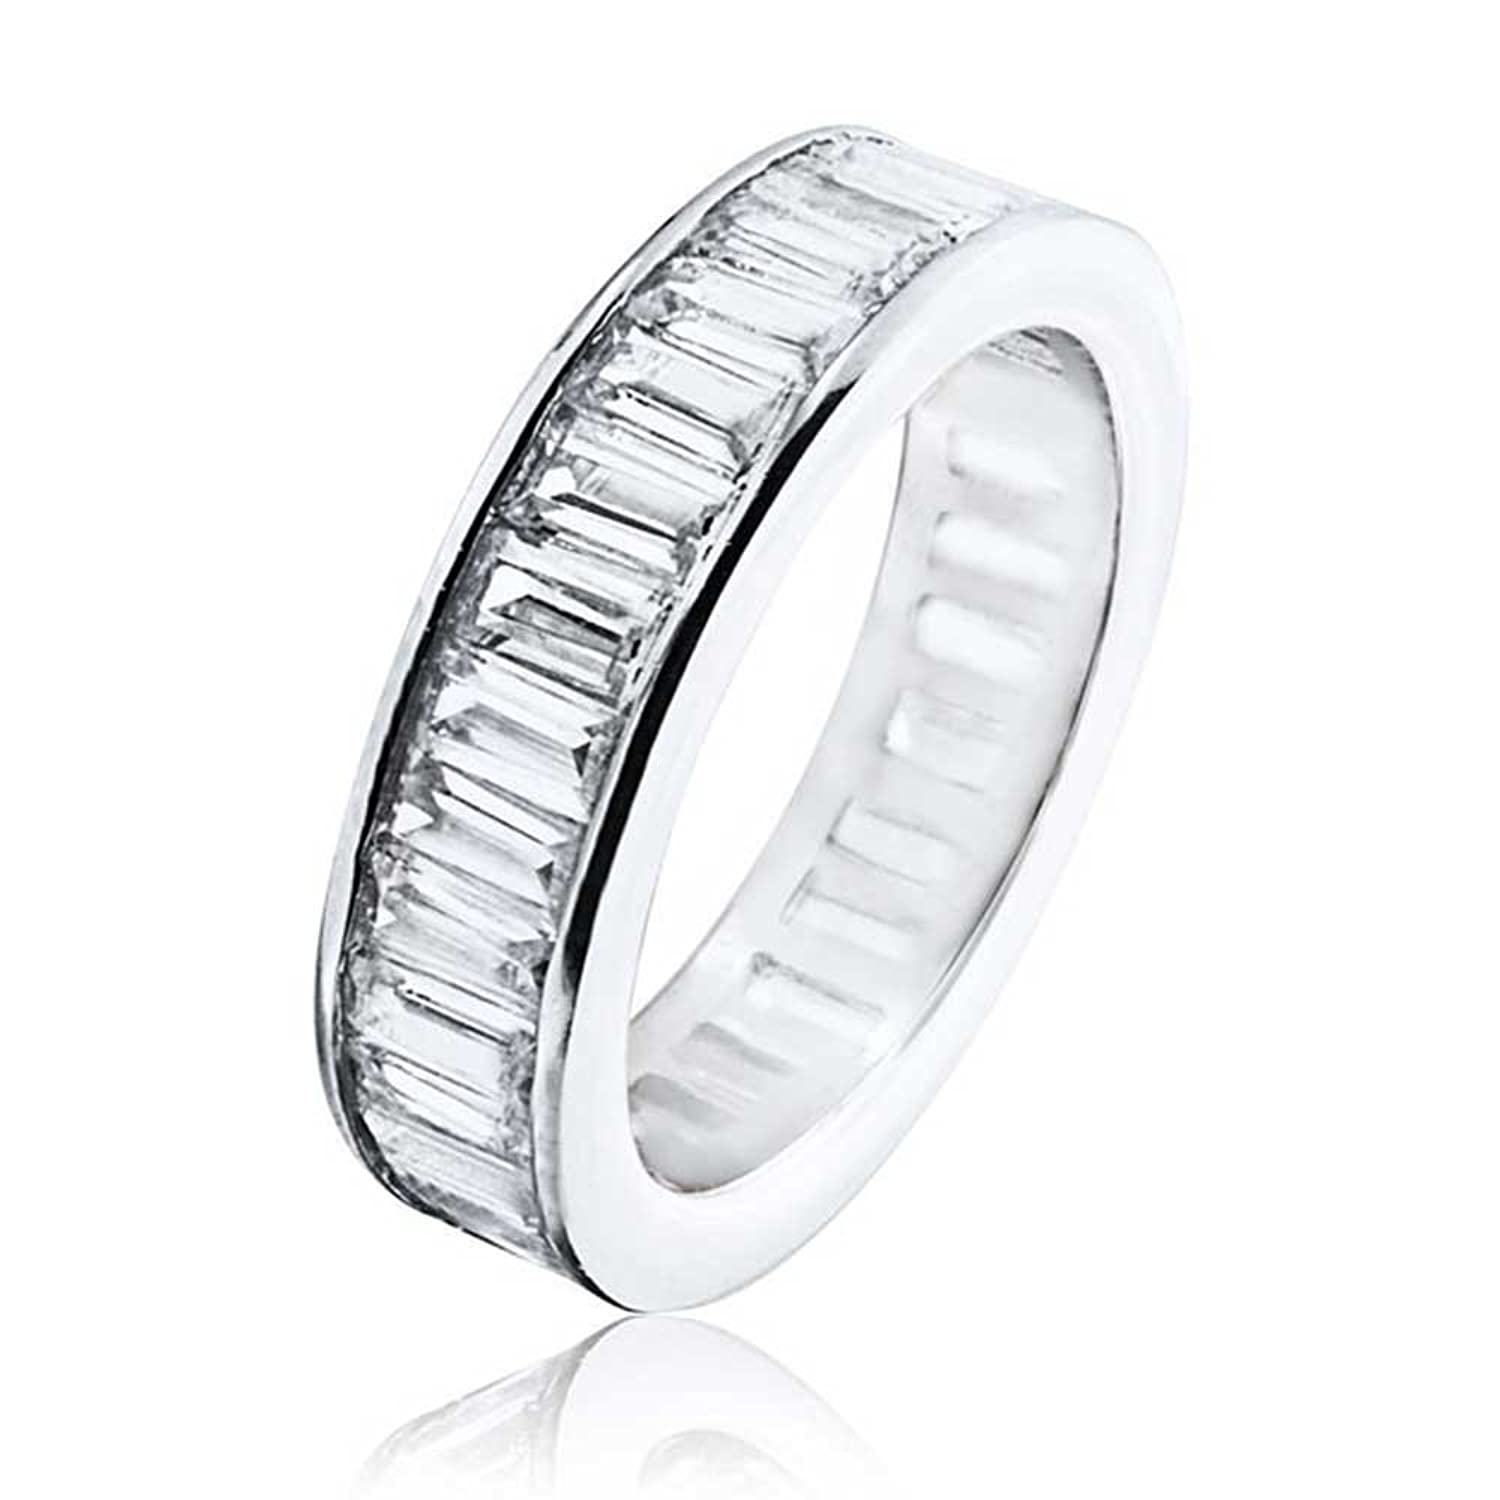 halo henri bands baguette stone wedding five daussi anniversary cushion diamond band